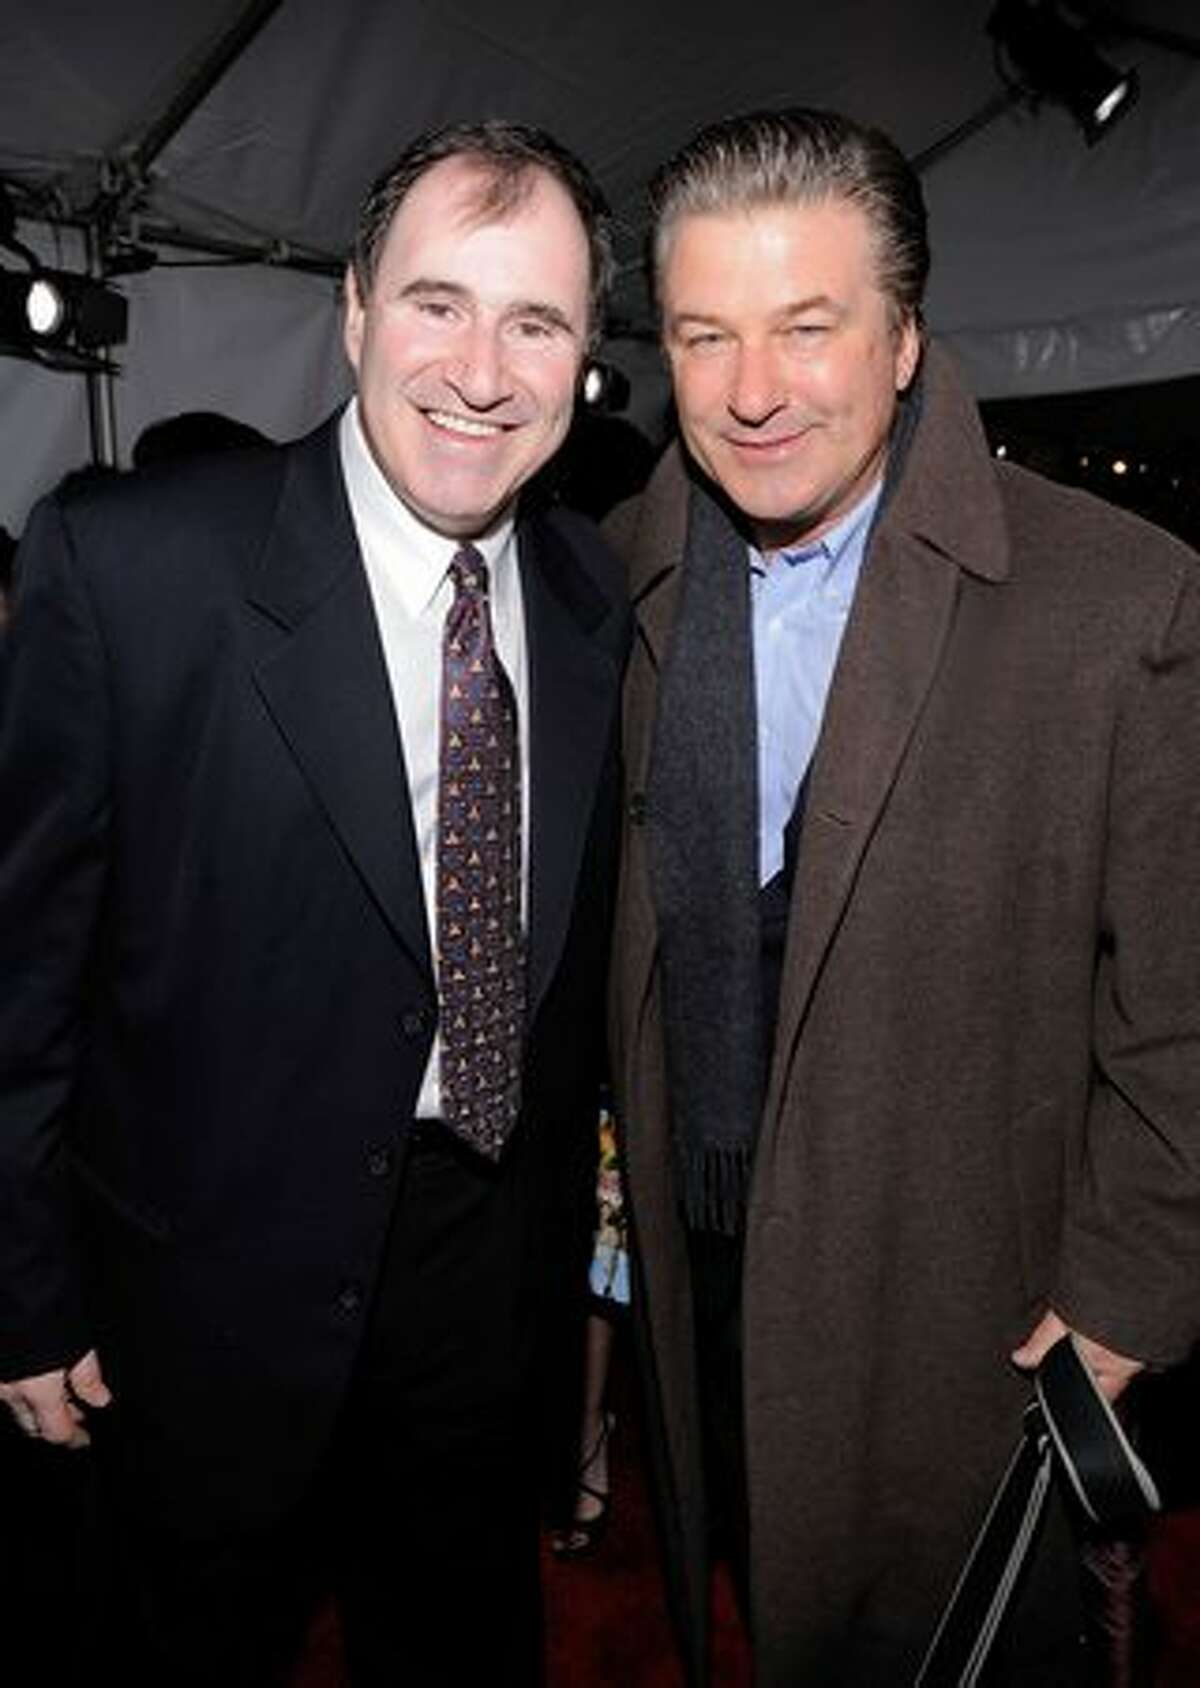 Actors Richard Kind (L) and Alec Baldwin attend IFP's 19th Annual Gotham Independent Film Awards at Cipriani, Wall Street on November 30, 2009 in New York City.